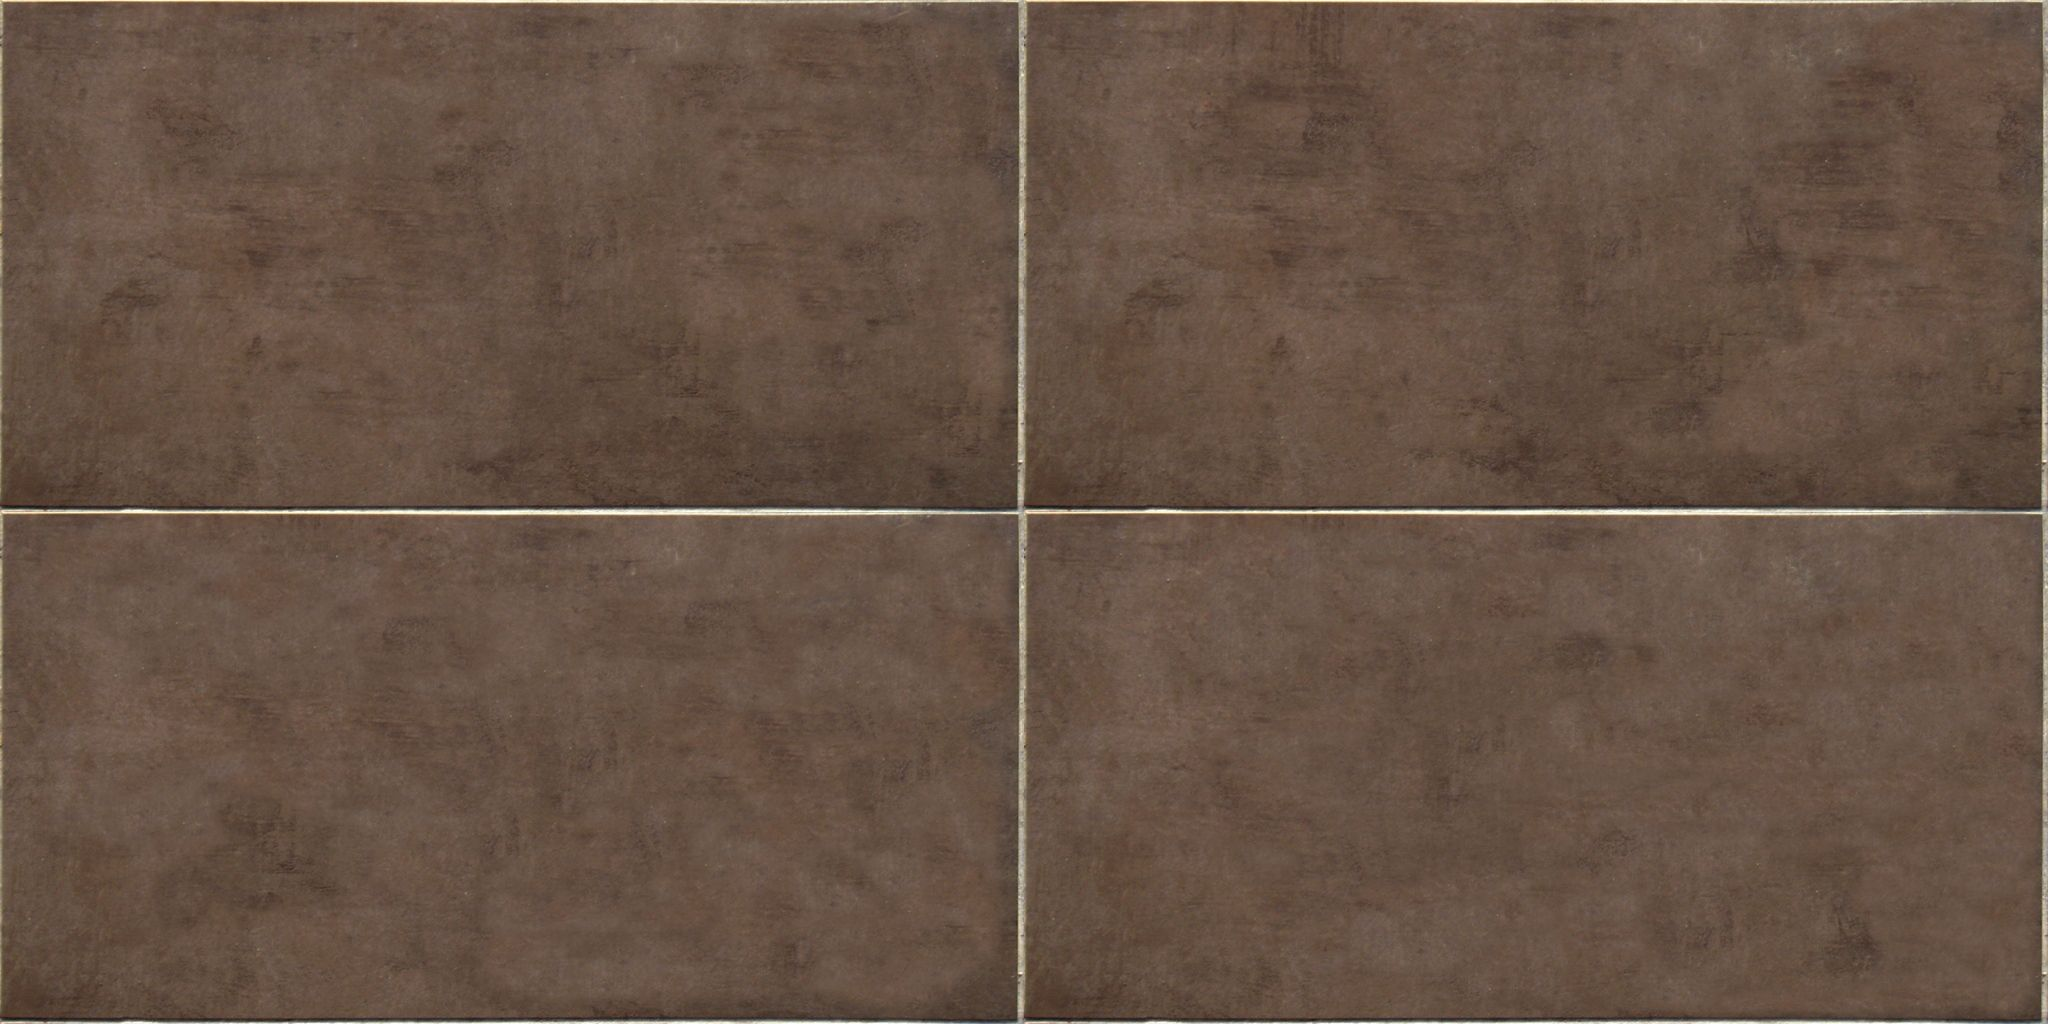 Image result for brown tile texture seamless | gallery | Pinterest